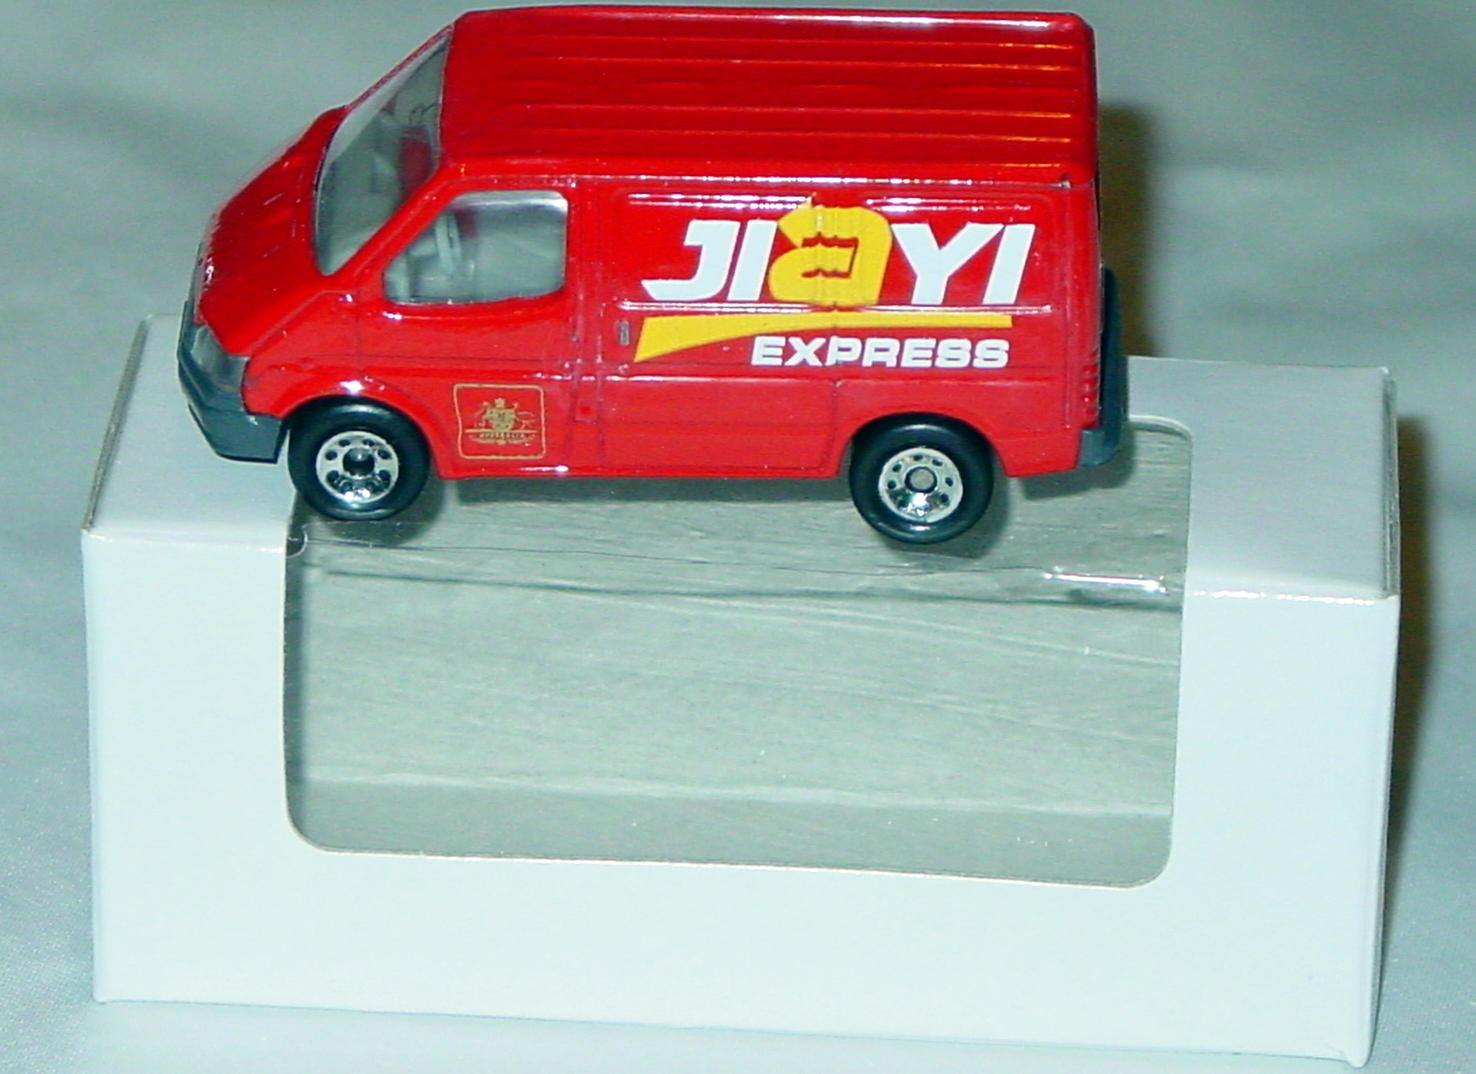 ASAP-CCI 15 K - MODELoftheMONTH 8/13Ford Transit Red Jiayi Express